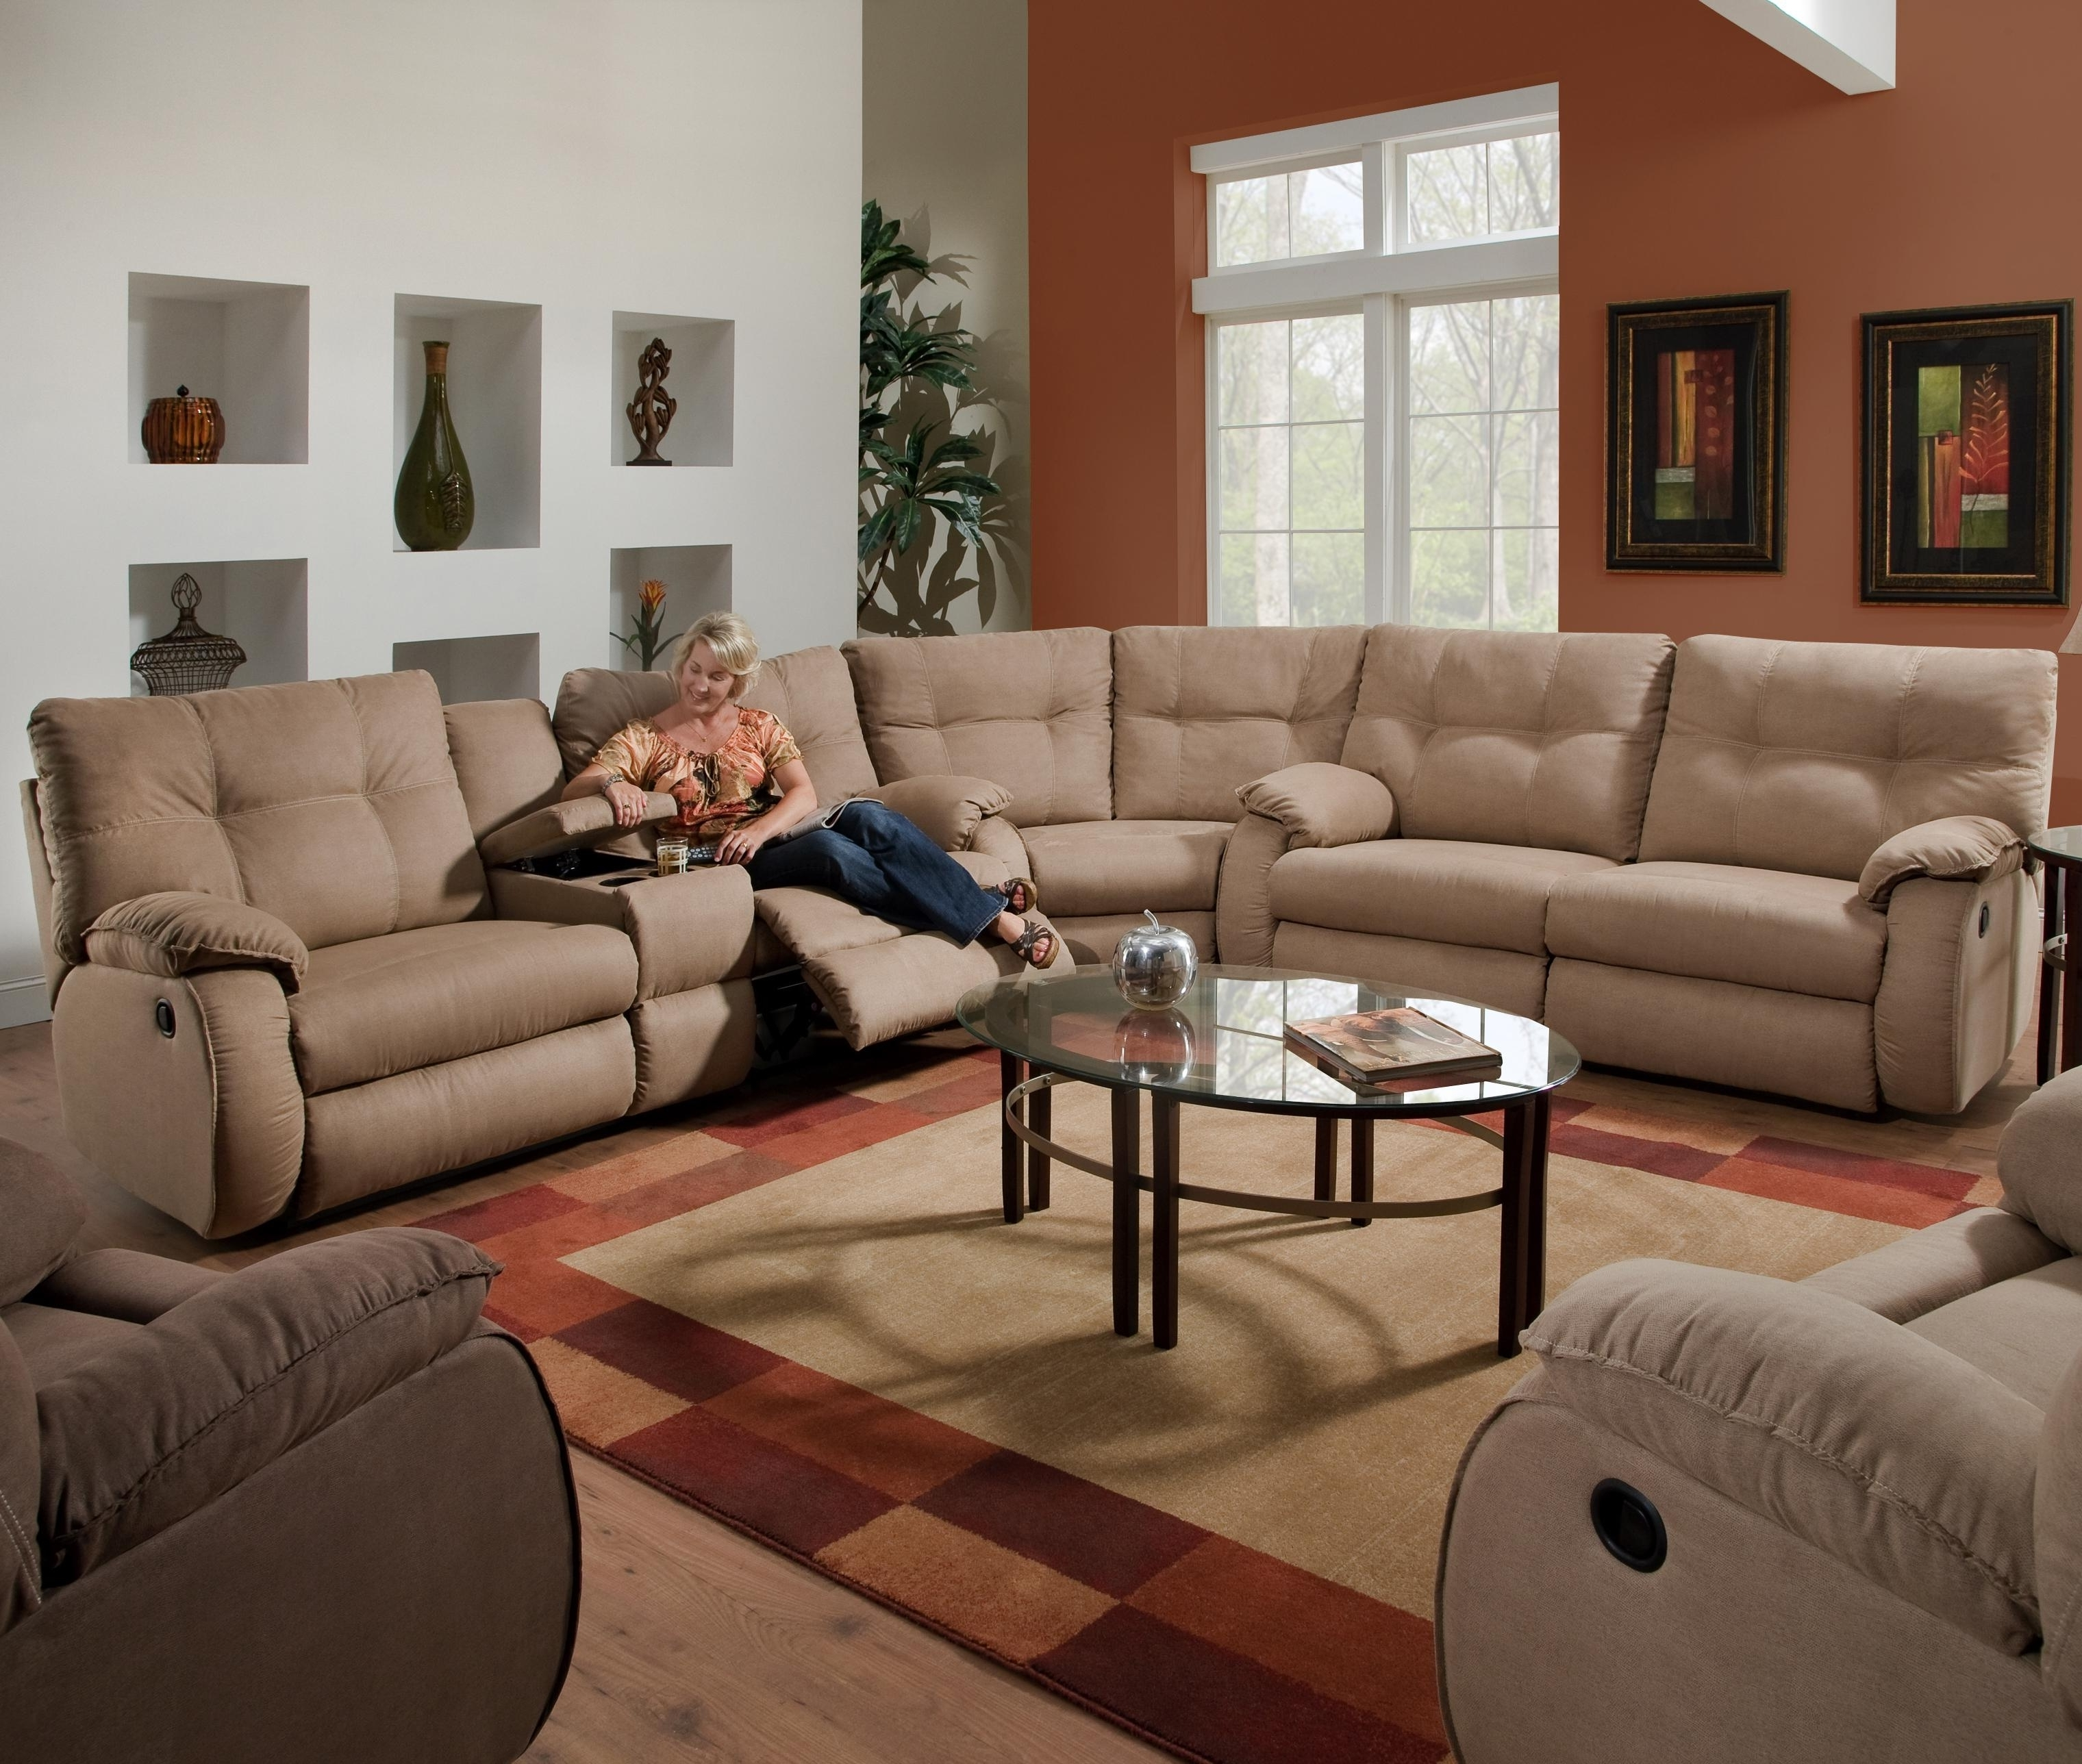 Photos Sectional Sofas Portland Oregon – Mediasupload Throughout Most Recently Released Portland Sectional Sofas (View 9 of 15)